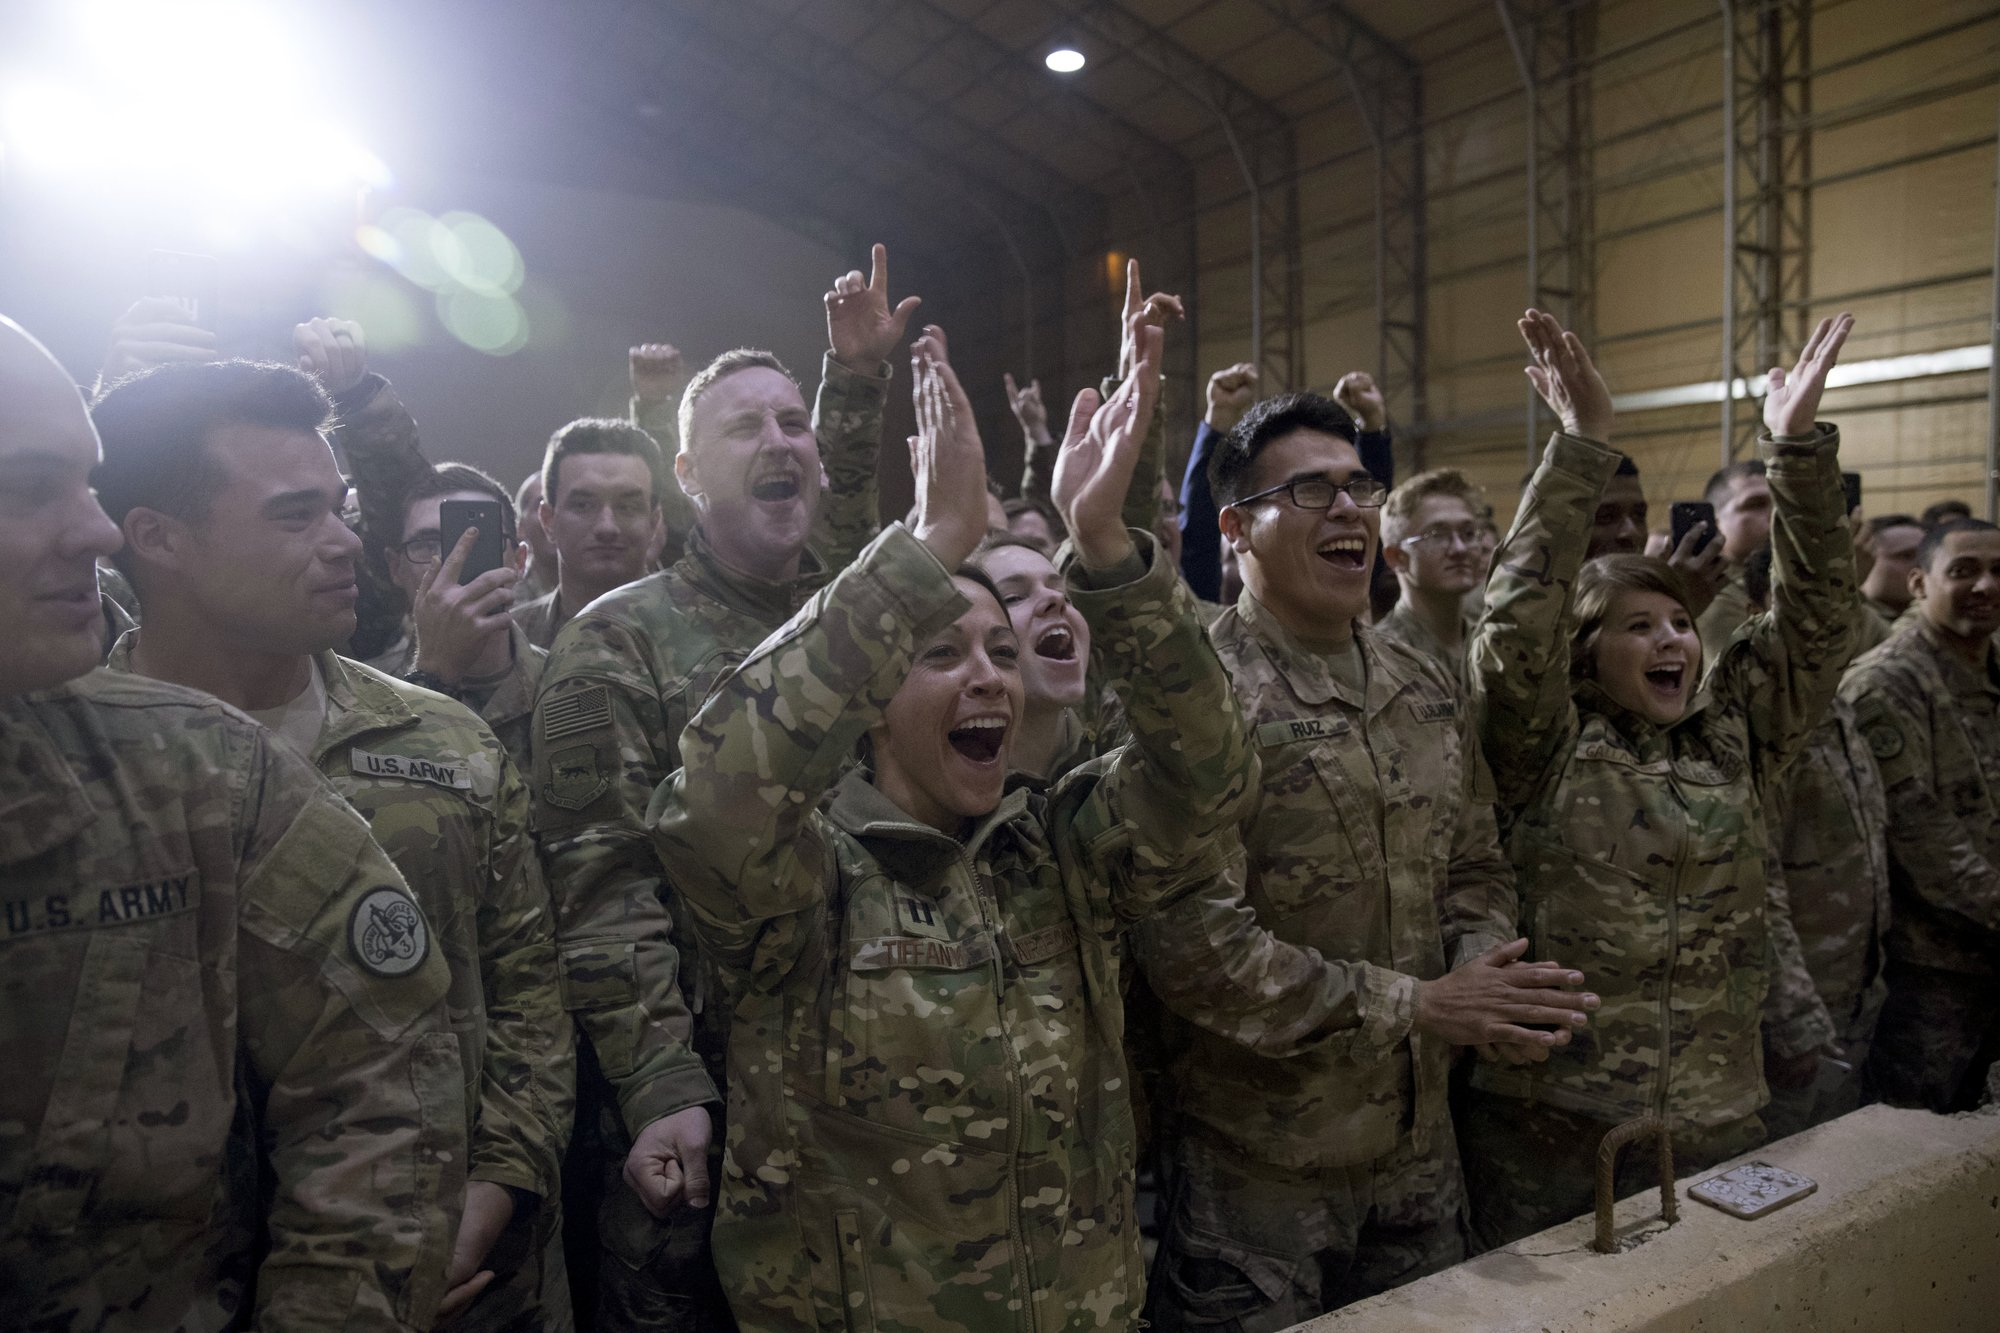 Members of the military cheer as President Donald Trump speaks at a hanger rally at Al Asad Air Base, Iraq, Wednesday, Dec. 26, 2018. President Donald Trump, who is visiting Iraq, says he has 'no plans at all' to remove US troops from the country. (AP Photo/Andrew Harnik)